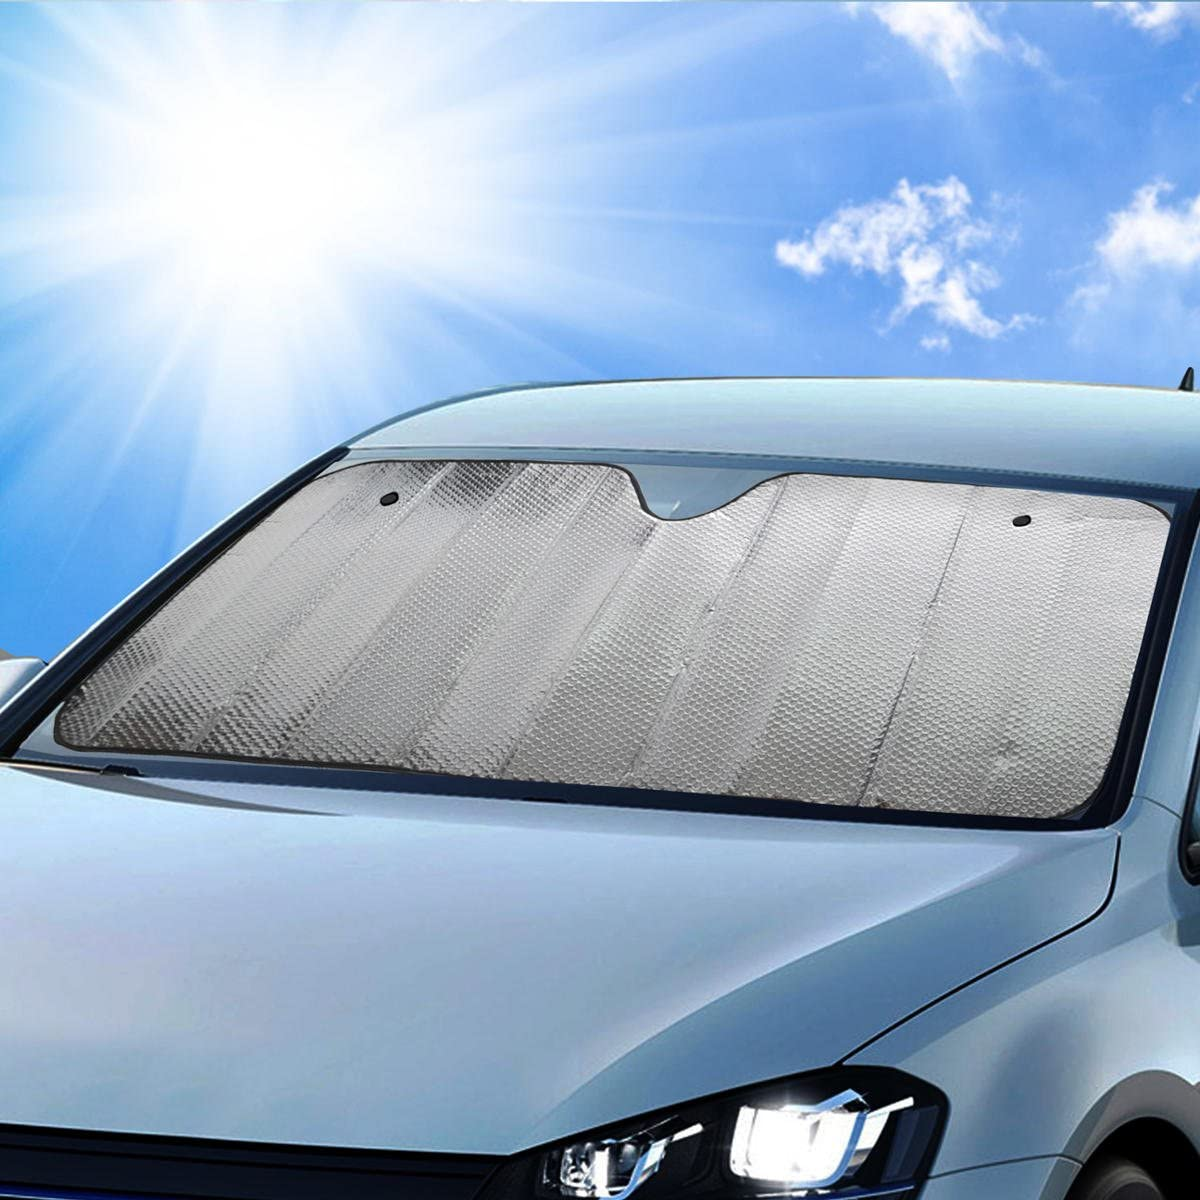 Single Bubble Front Windshield Shade Window Shade- Accordion Folding Auto Sunshade for Car Truck SUV-Blocks UV Rays Sun Visor Protector-Keeps Your Vehicle Cool